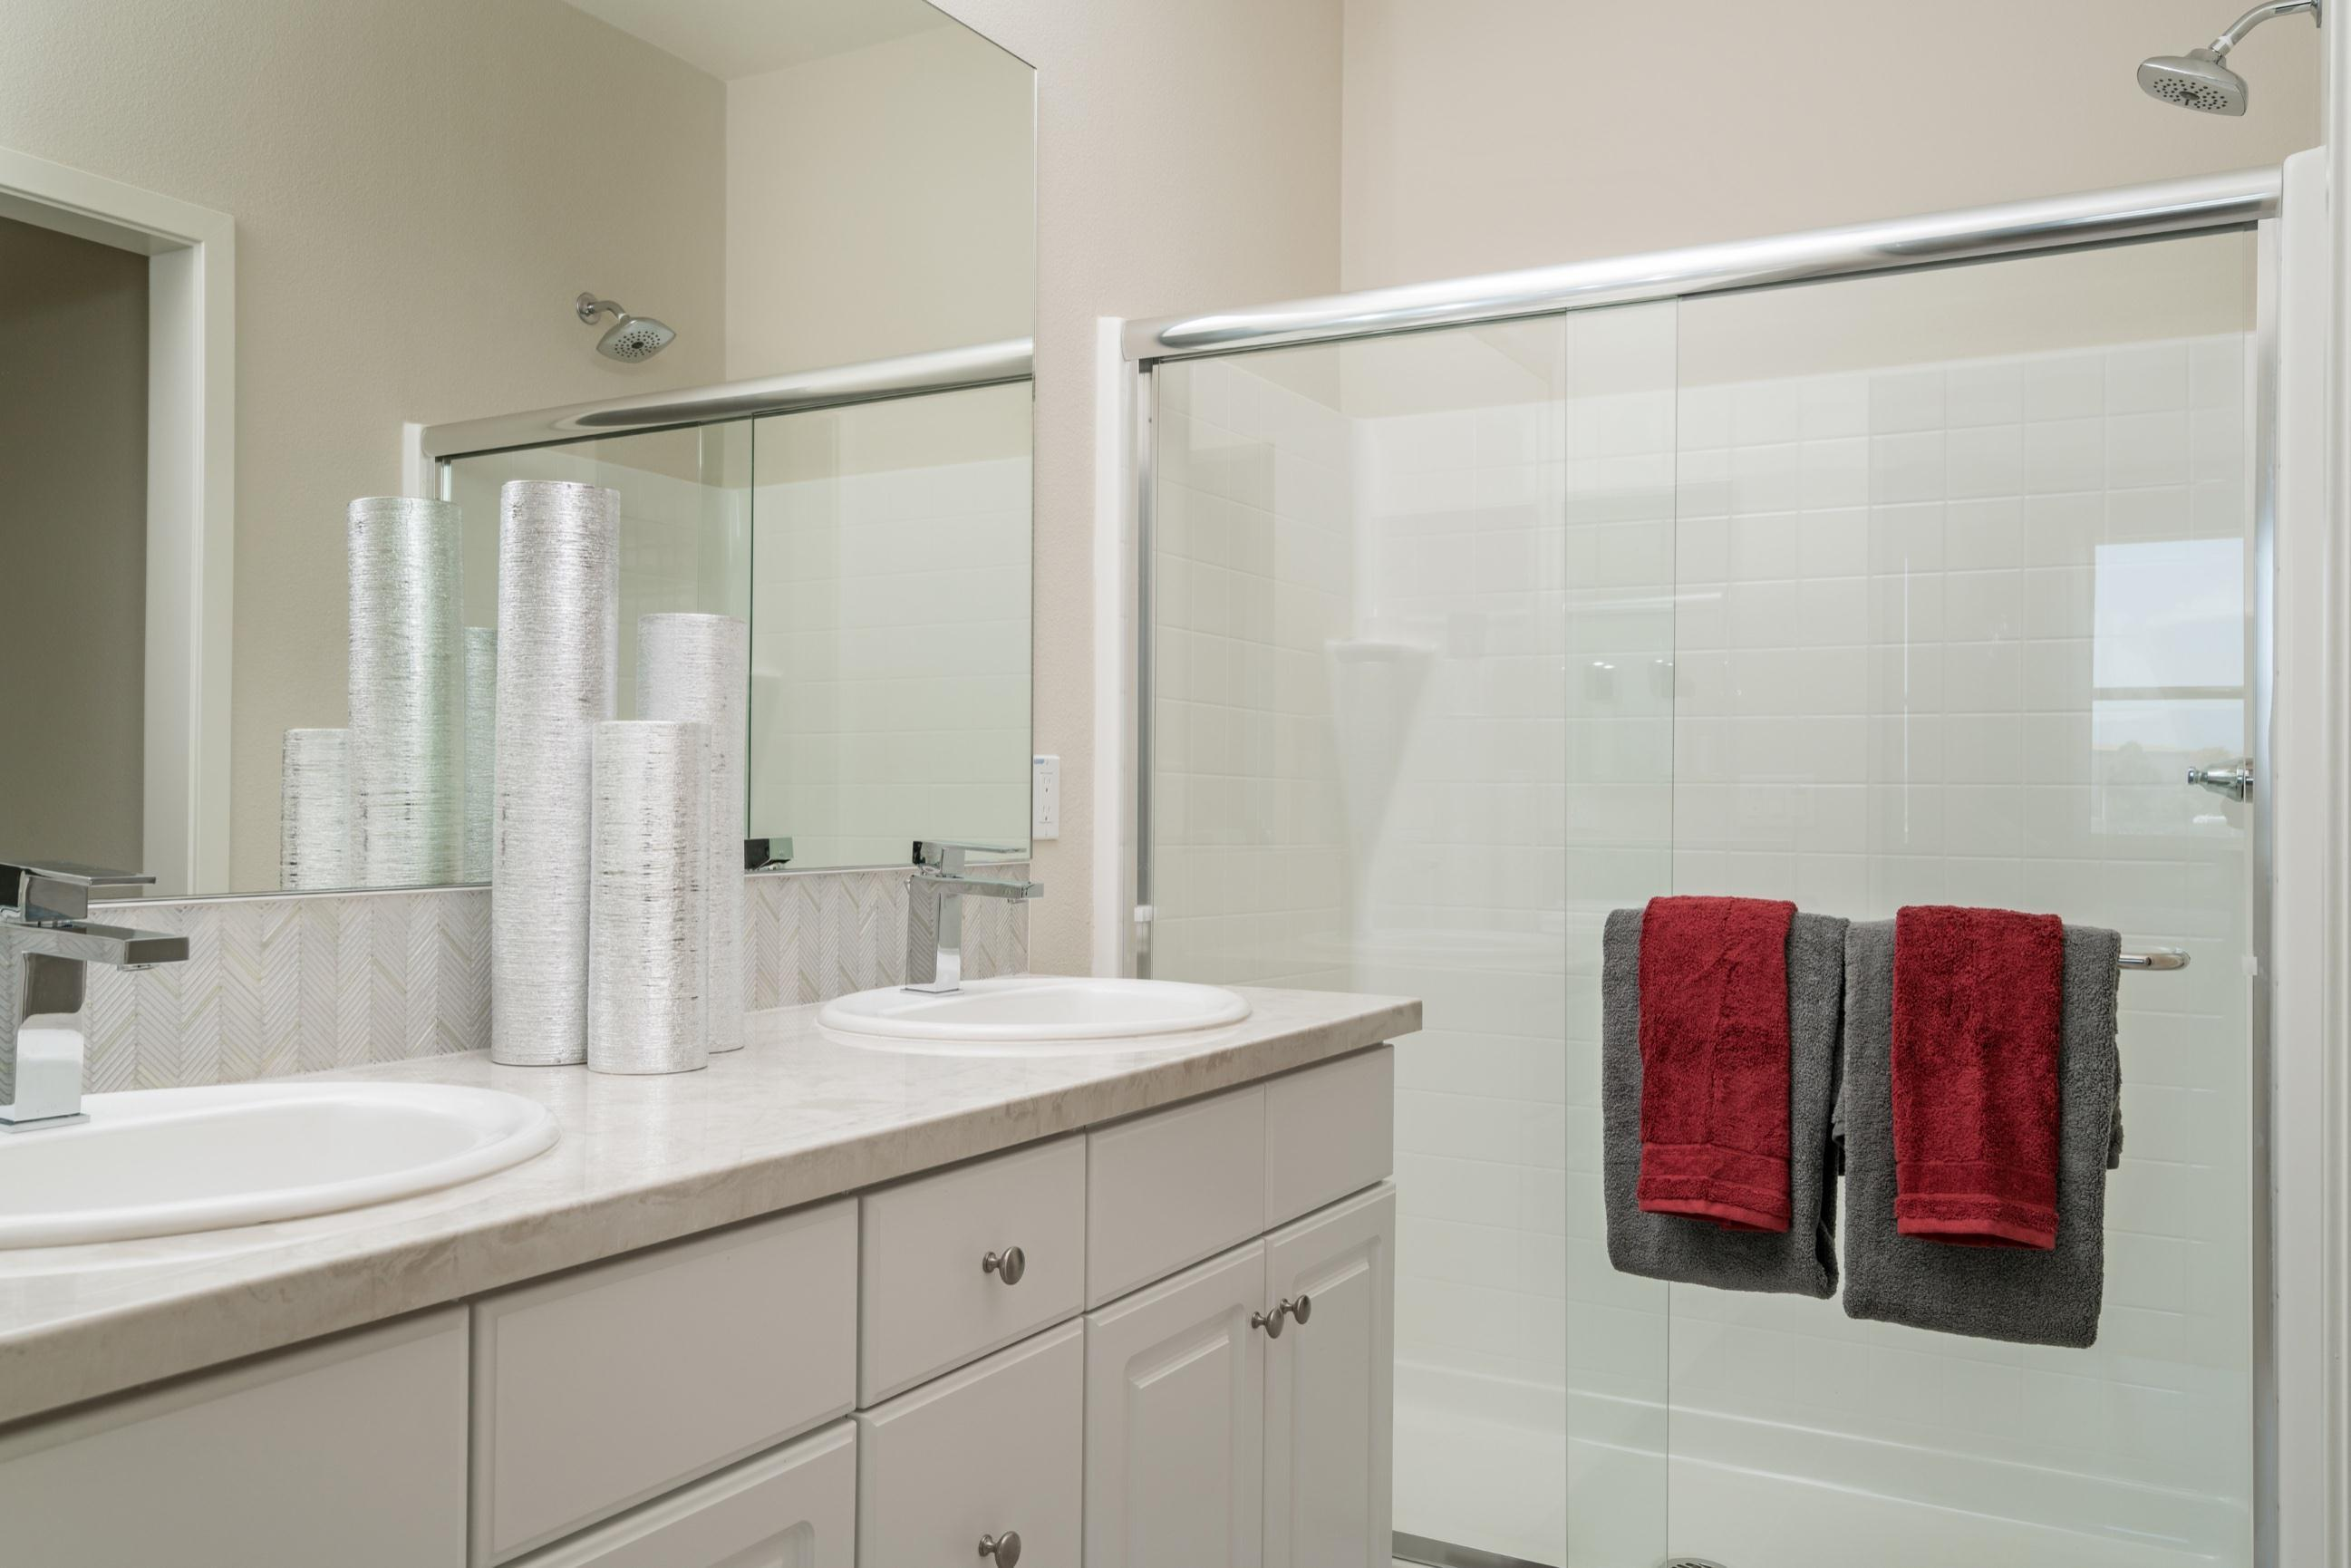 Bathroom featured in the Plan 1 By Heritage Building & Dev't in San Diego, CA